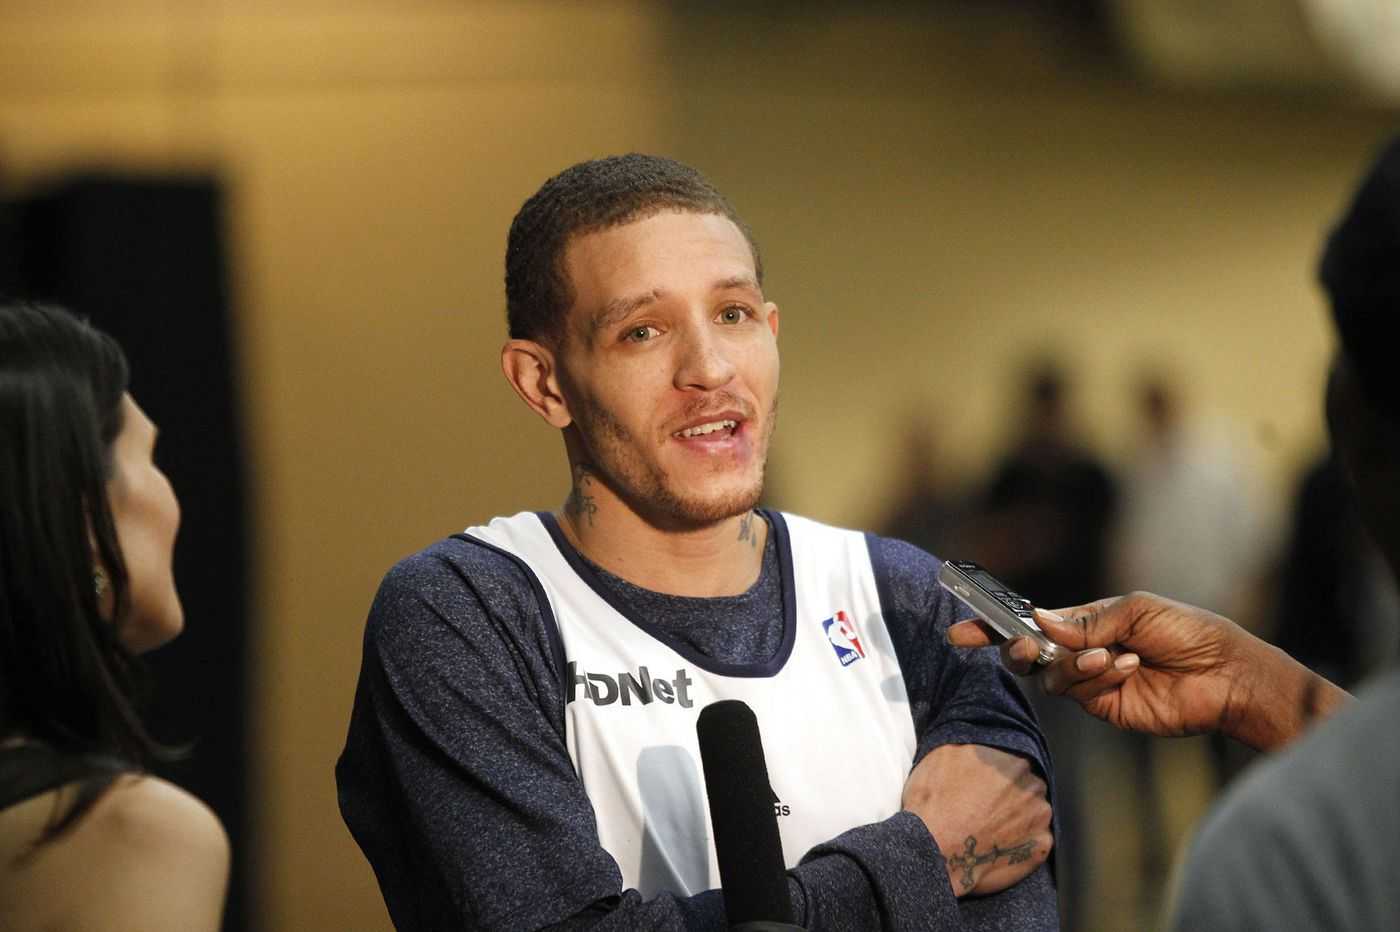 delonte-west-landed-a-job-at-the-same-rehab-where-he-got-treated